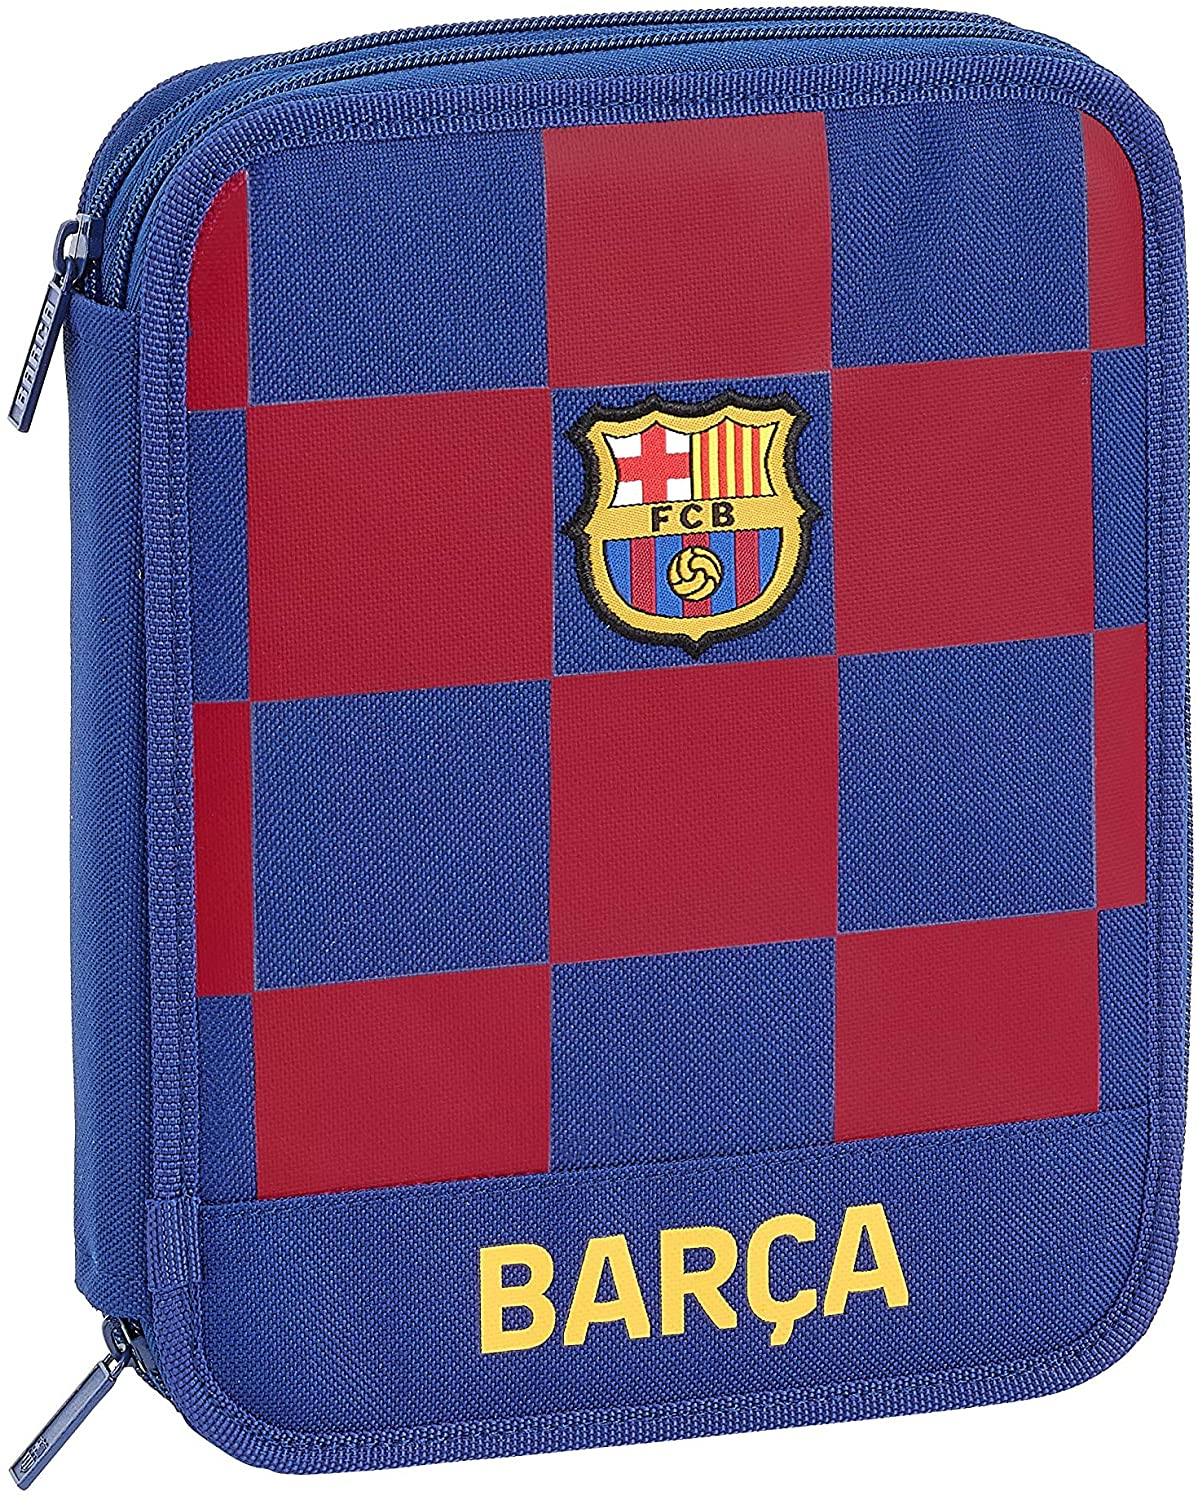 FC Barcelona 1a Equip Pencil Case 19/20 Official, 56 Useful Included, 195 x 248 x 45 mm